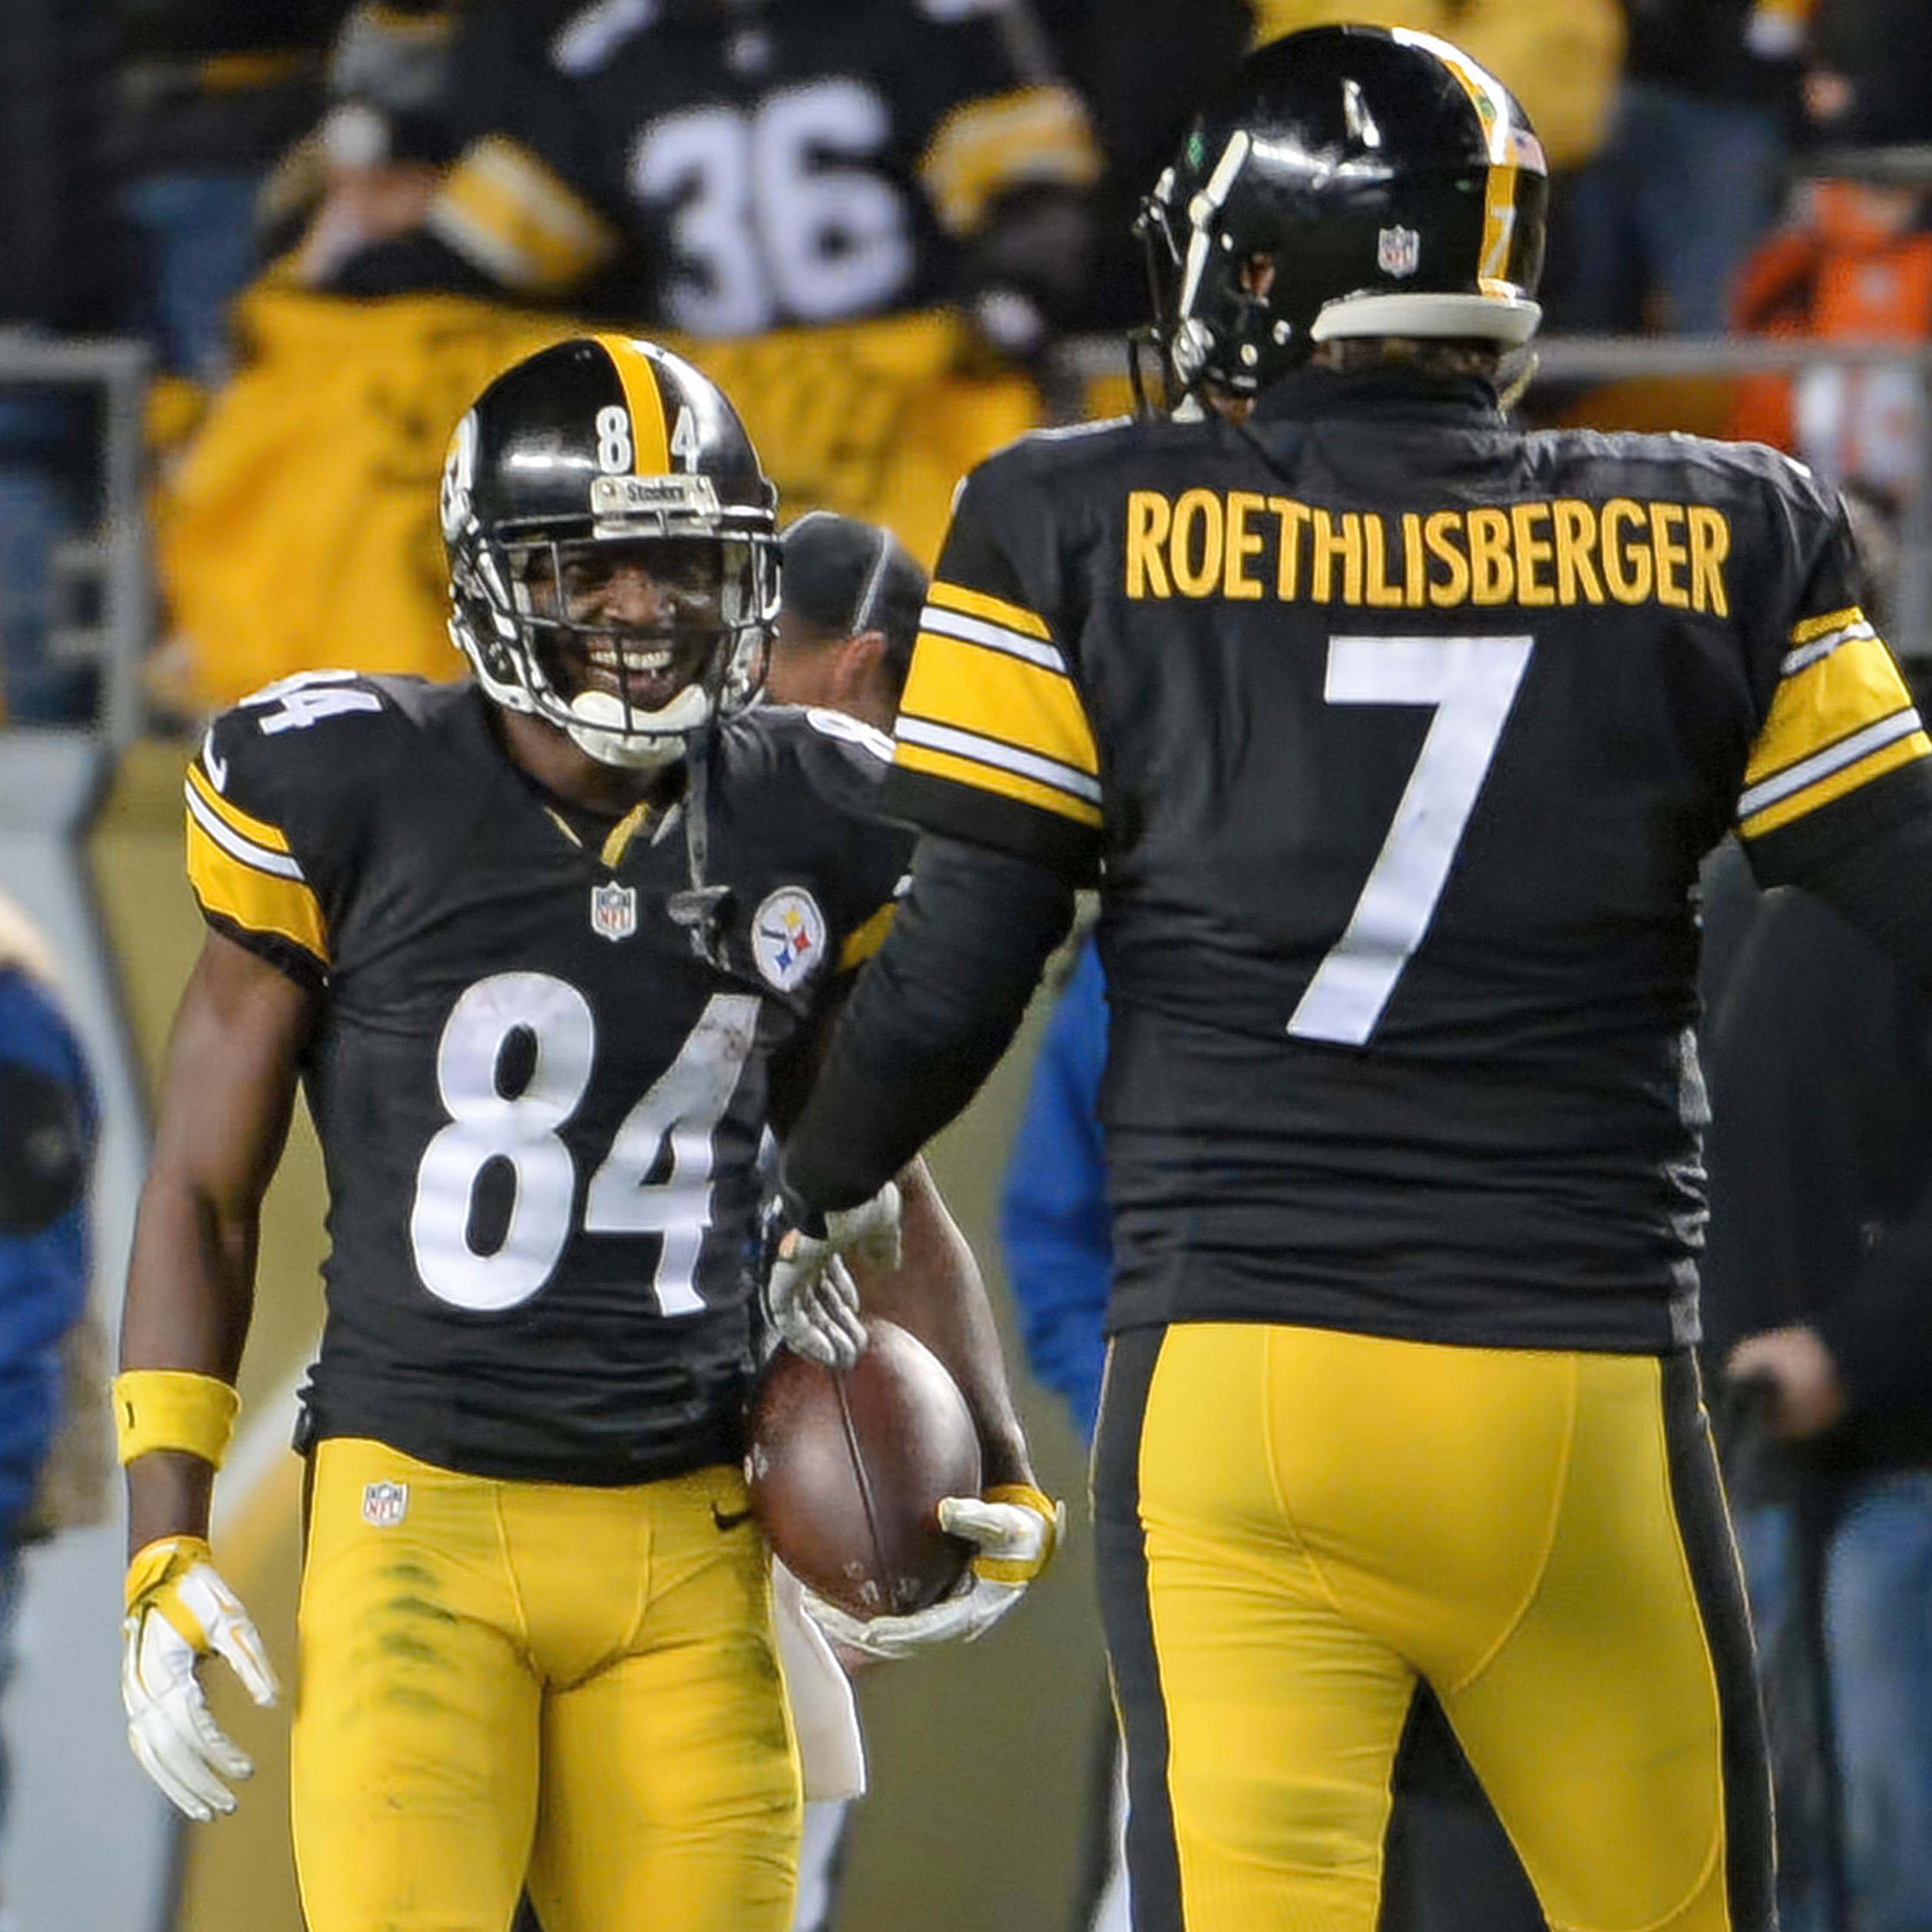 Ron Cook: Roethlisberger, Brown virtually unstoppable ...